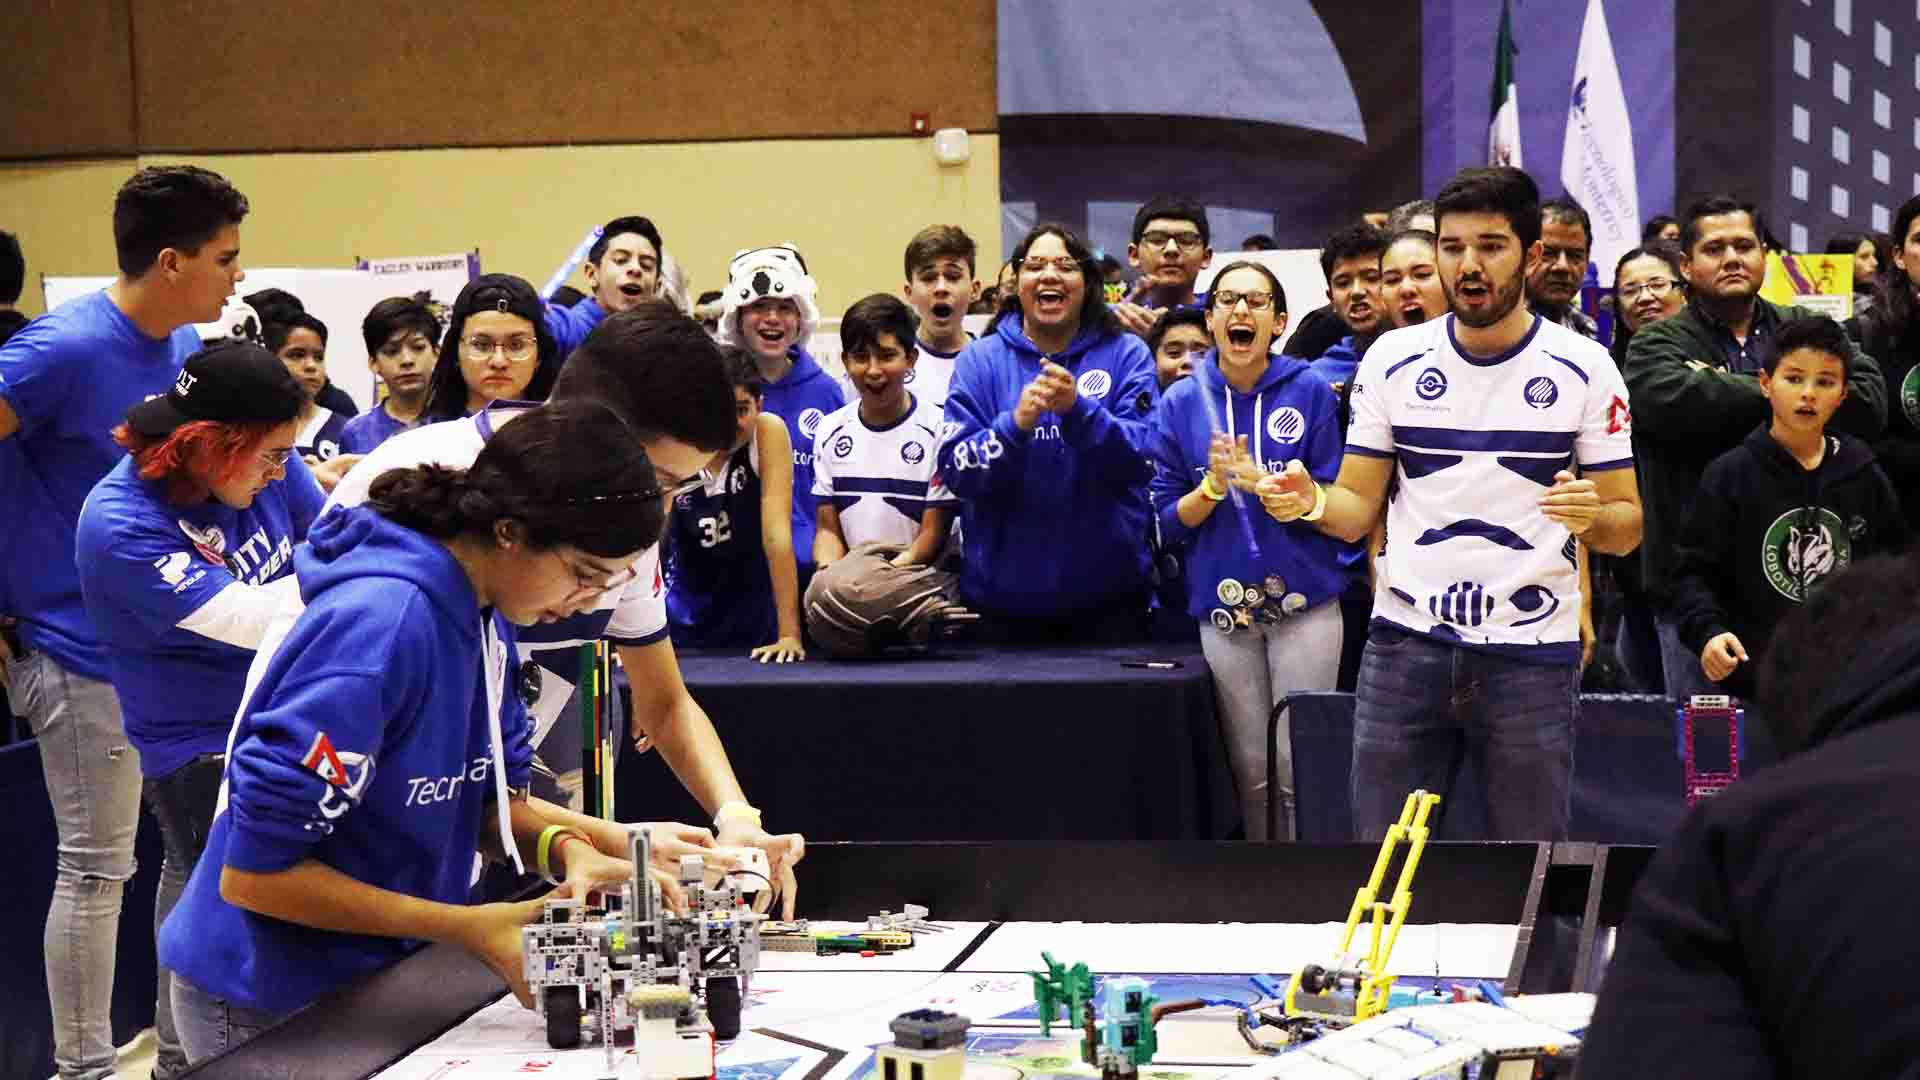 FIRST LEGO League en PrepaTec en Laguna